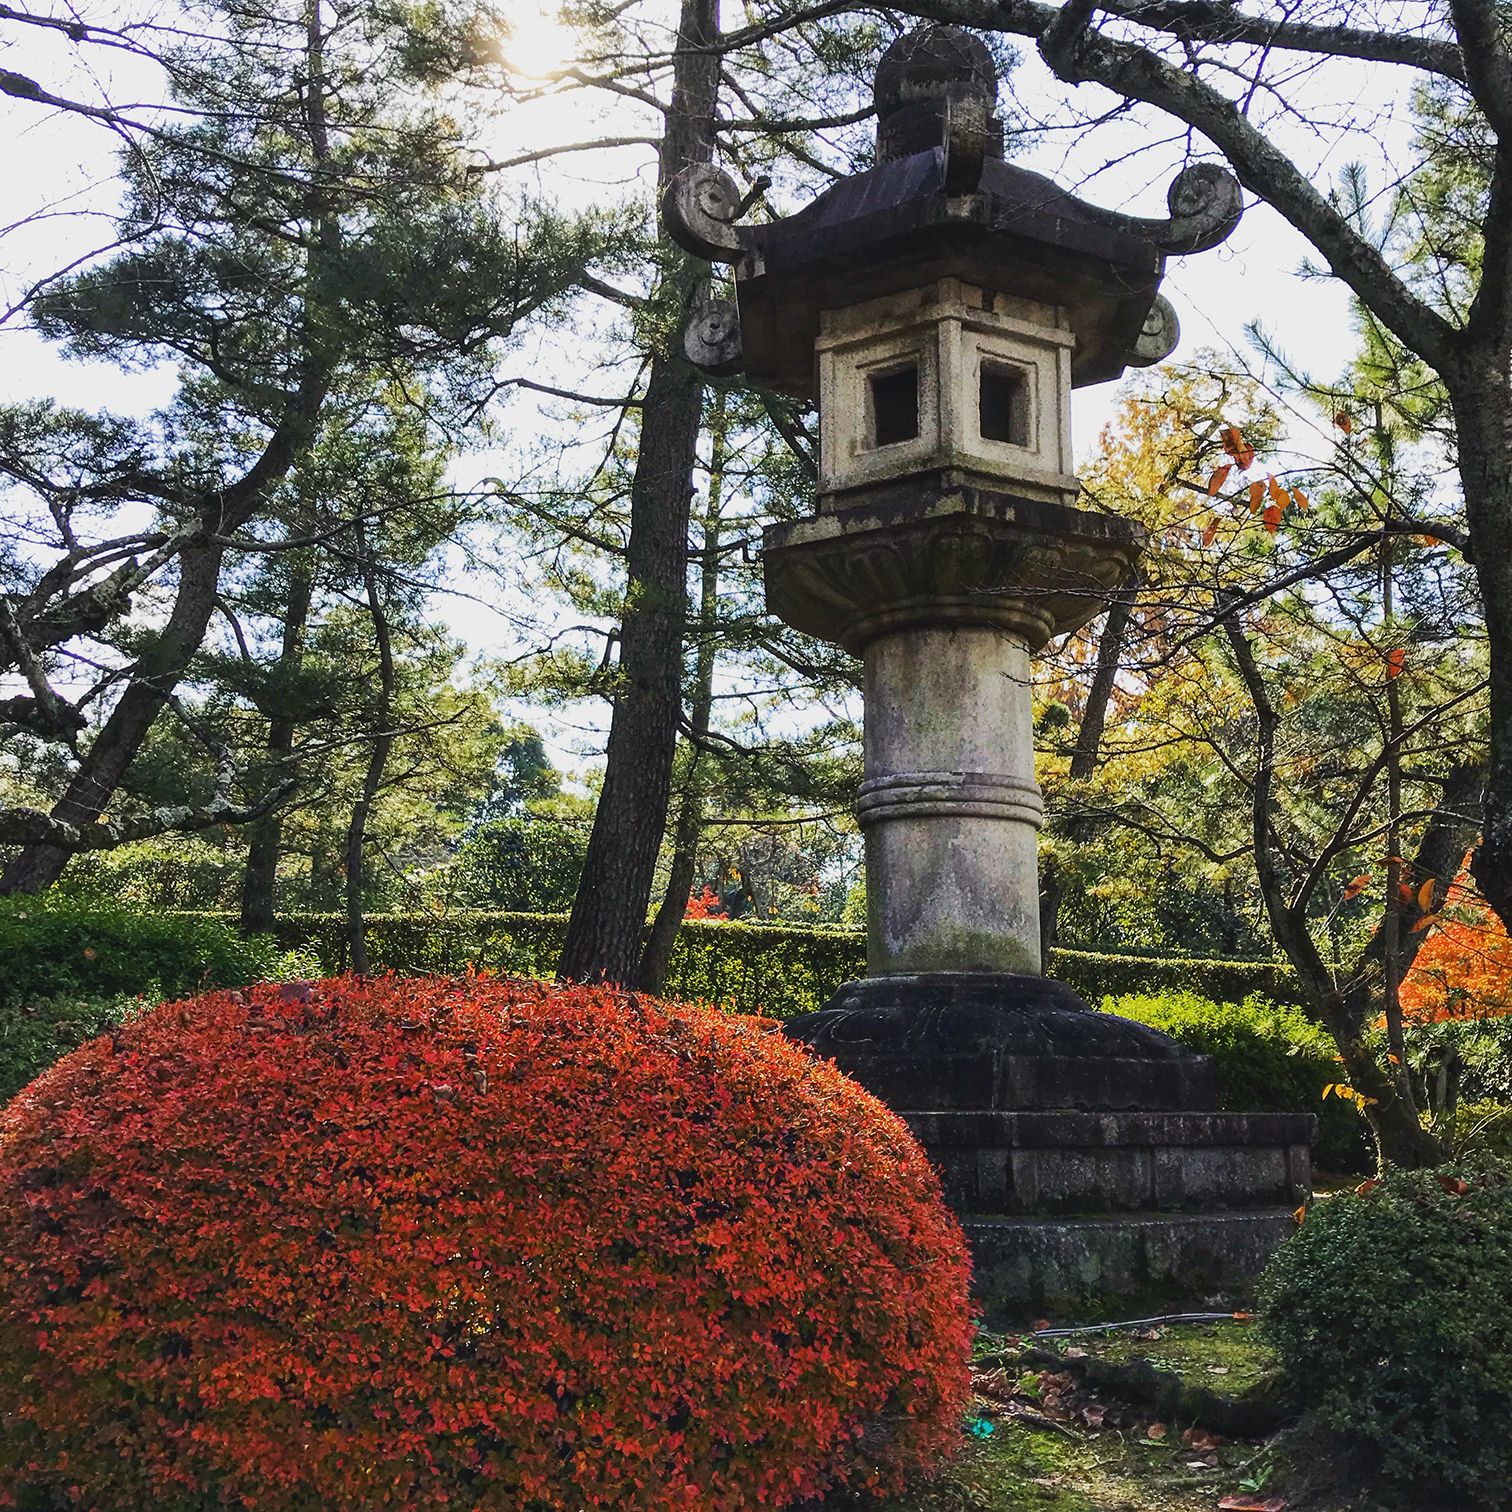 In the book \u201cJapanese Garden Design\u201d Marc Peter Keane writes \u201cStone lanterns are often used primarily as sculptural elements their function as lights ... & An Design